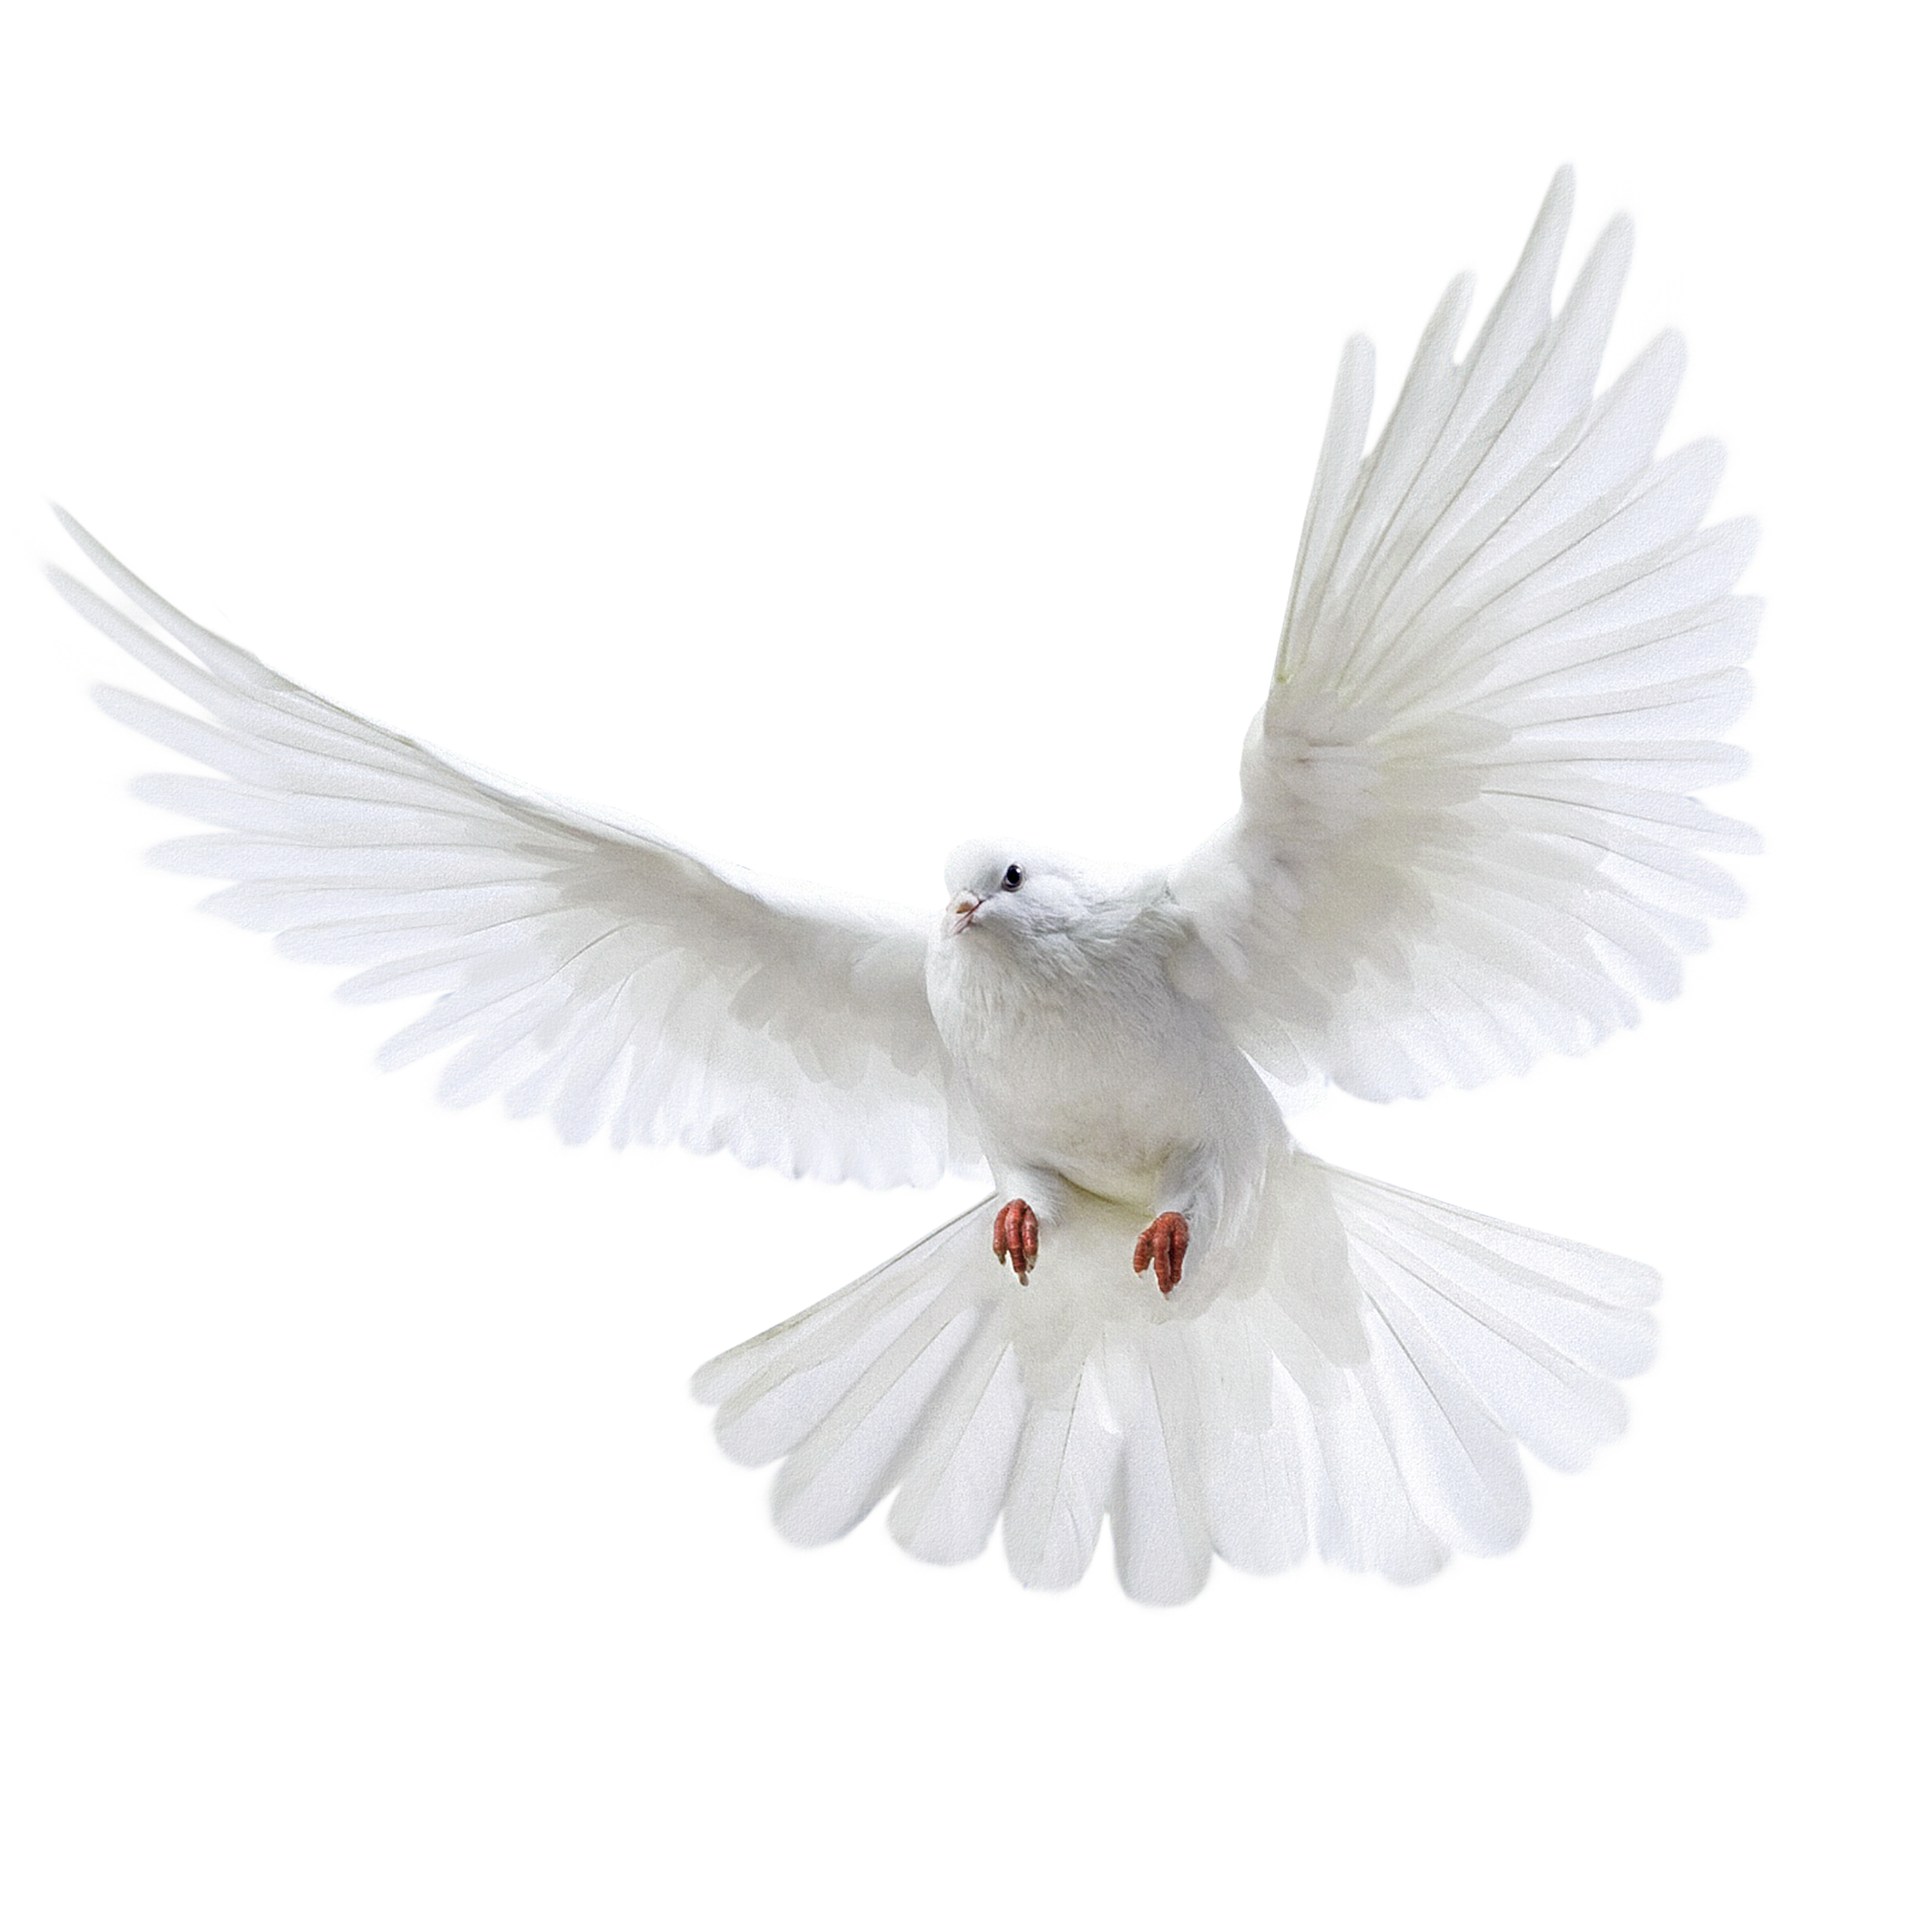 Imagen Png Paloma Blanca Volando Pet Care Is Both Enjoyable Business But It Is An Effort That Requires As Much Respons White Pigeon Flying Pigeon White Bird